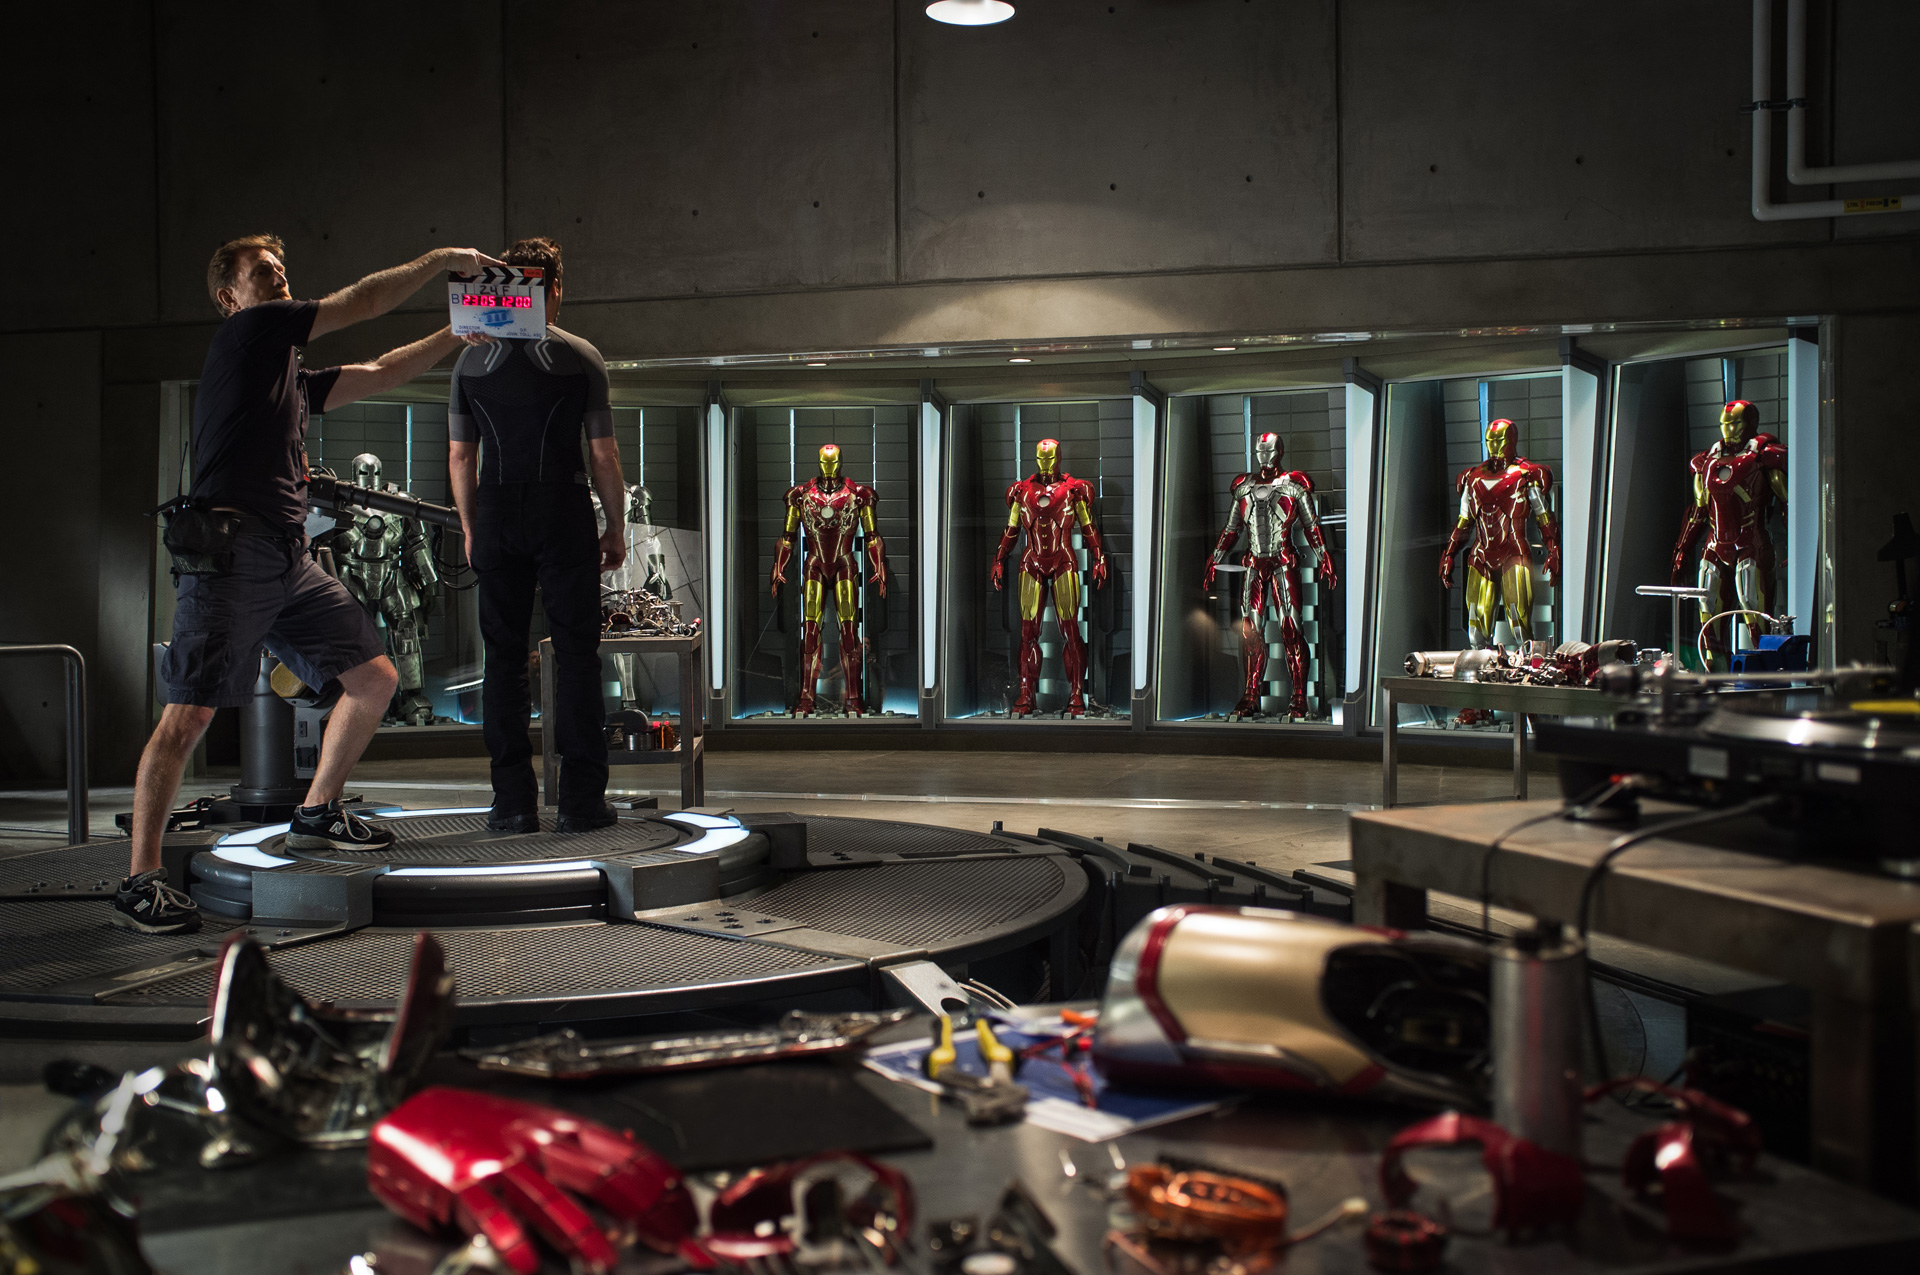 http://collider.com/wp-content/uploads/iron-man-3-movie-image-set-photo1.jpg